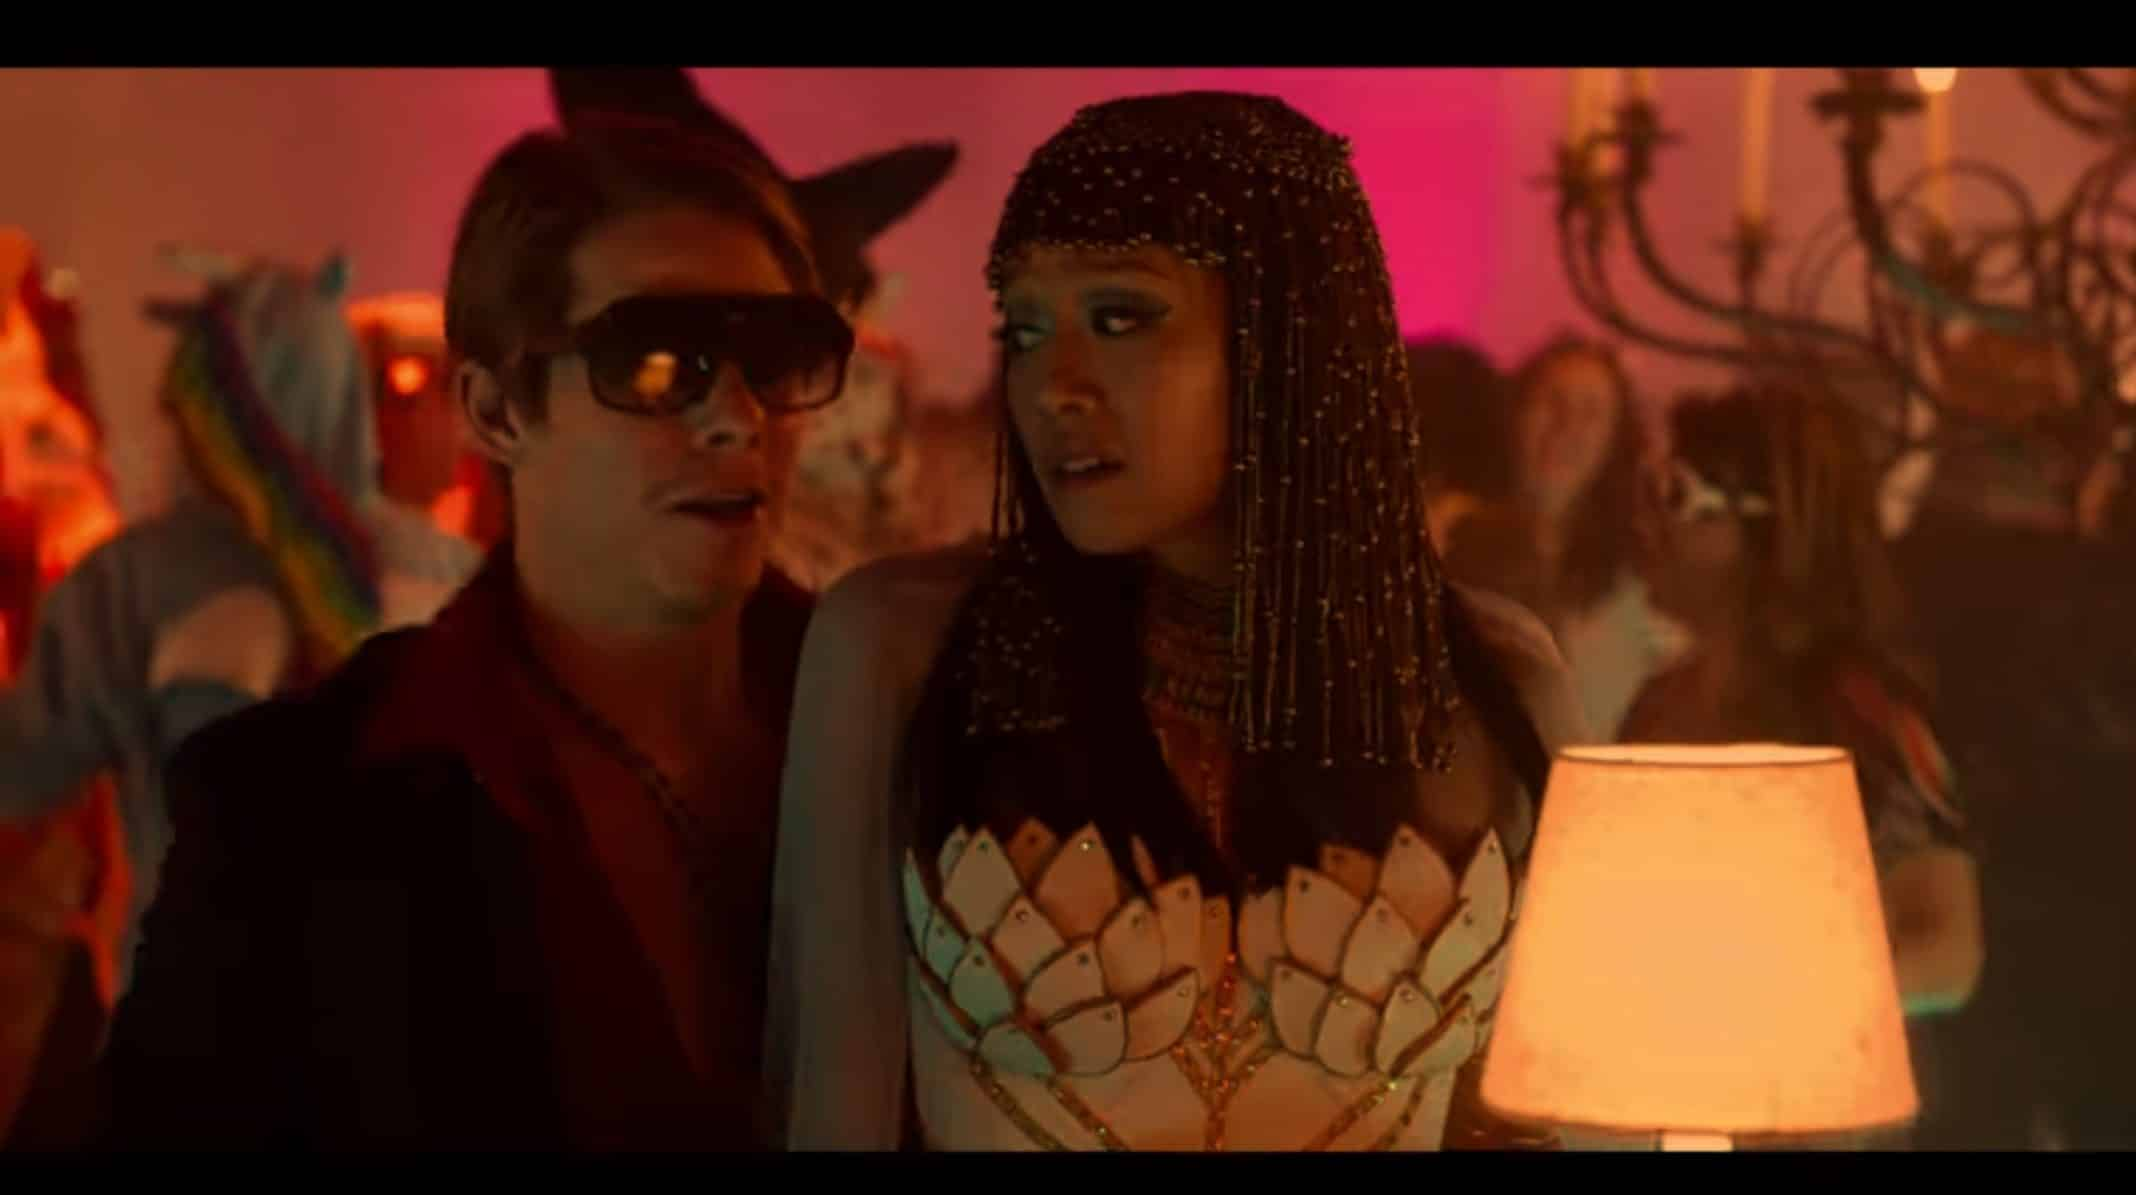 York (Jake Manley) and Liz (Cynthy Wu) at a Halloween party as Marc Anthony and Cleopatra.